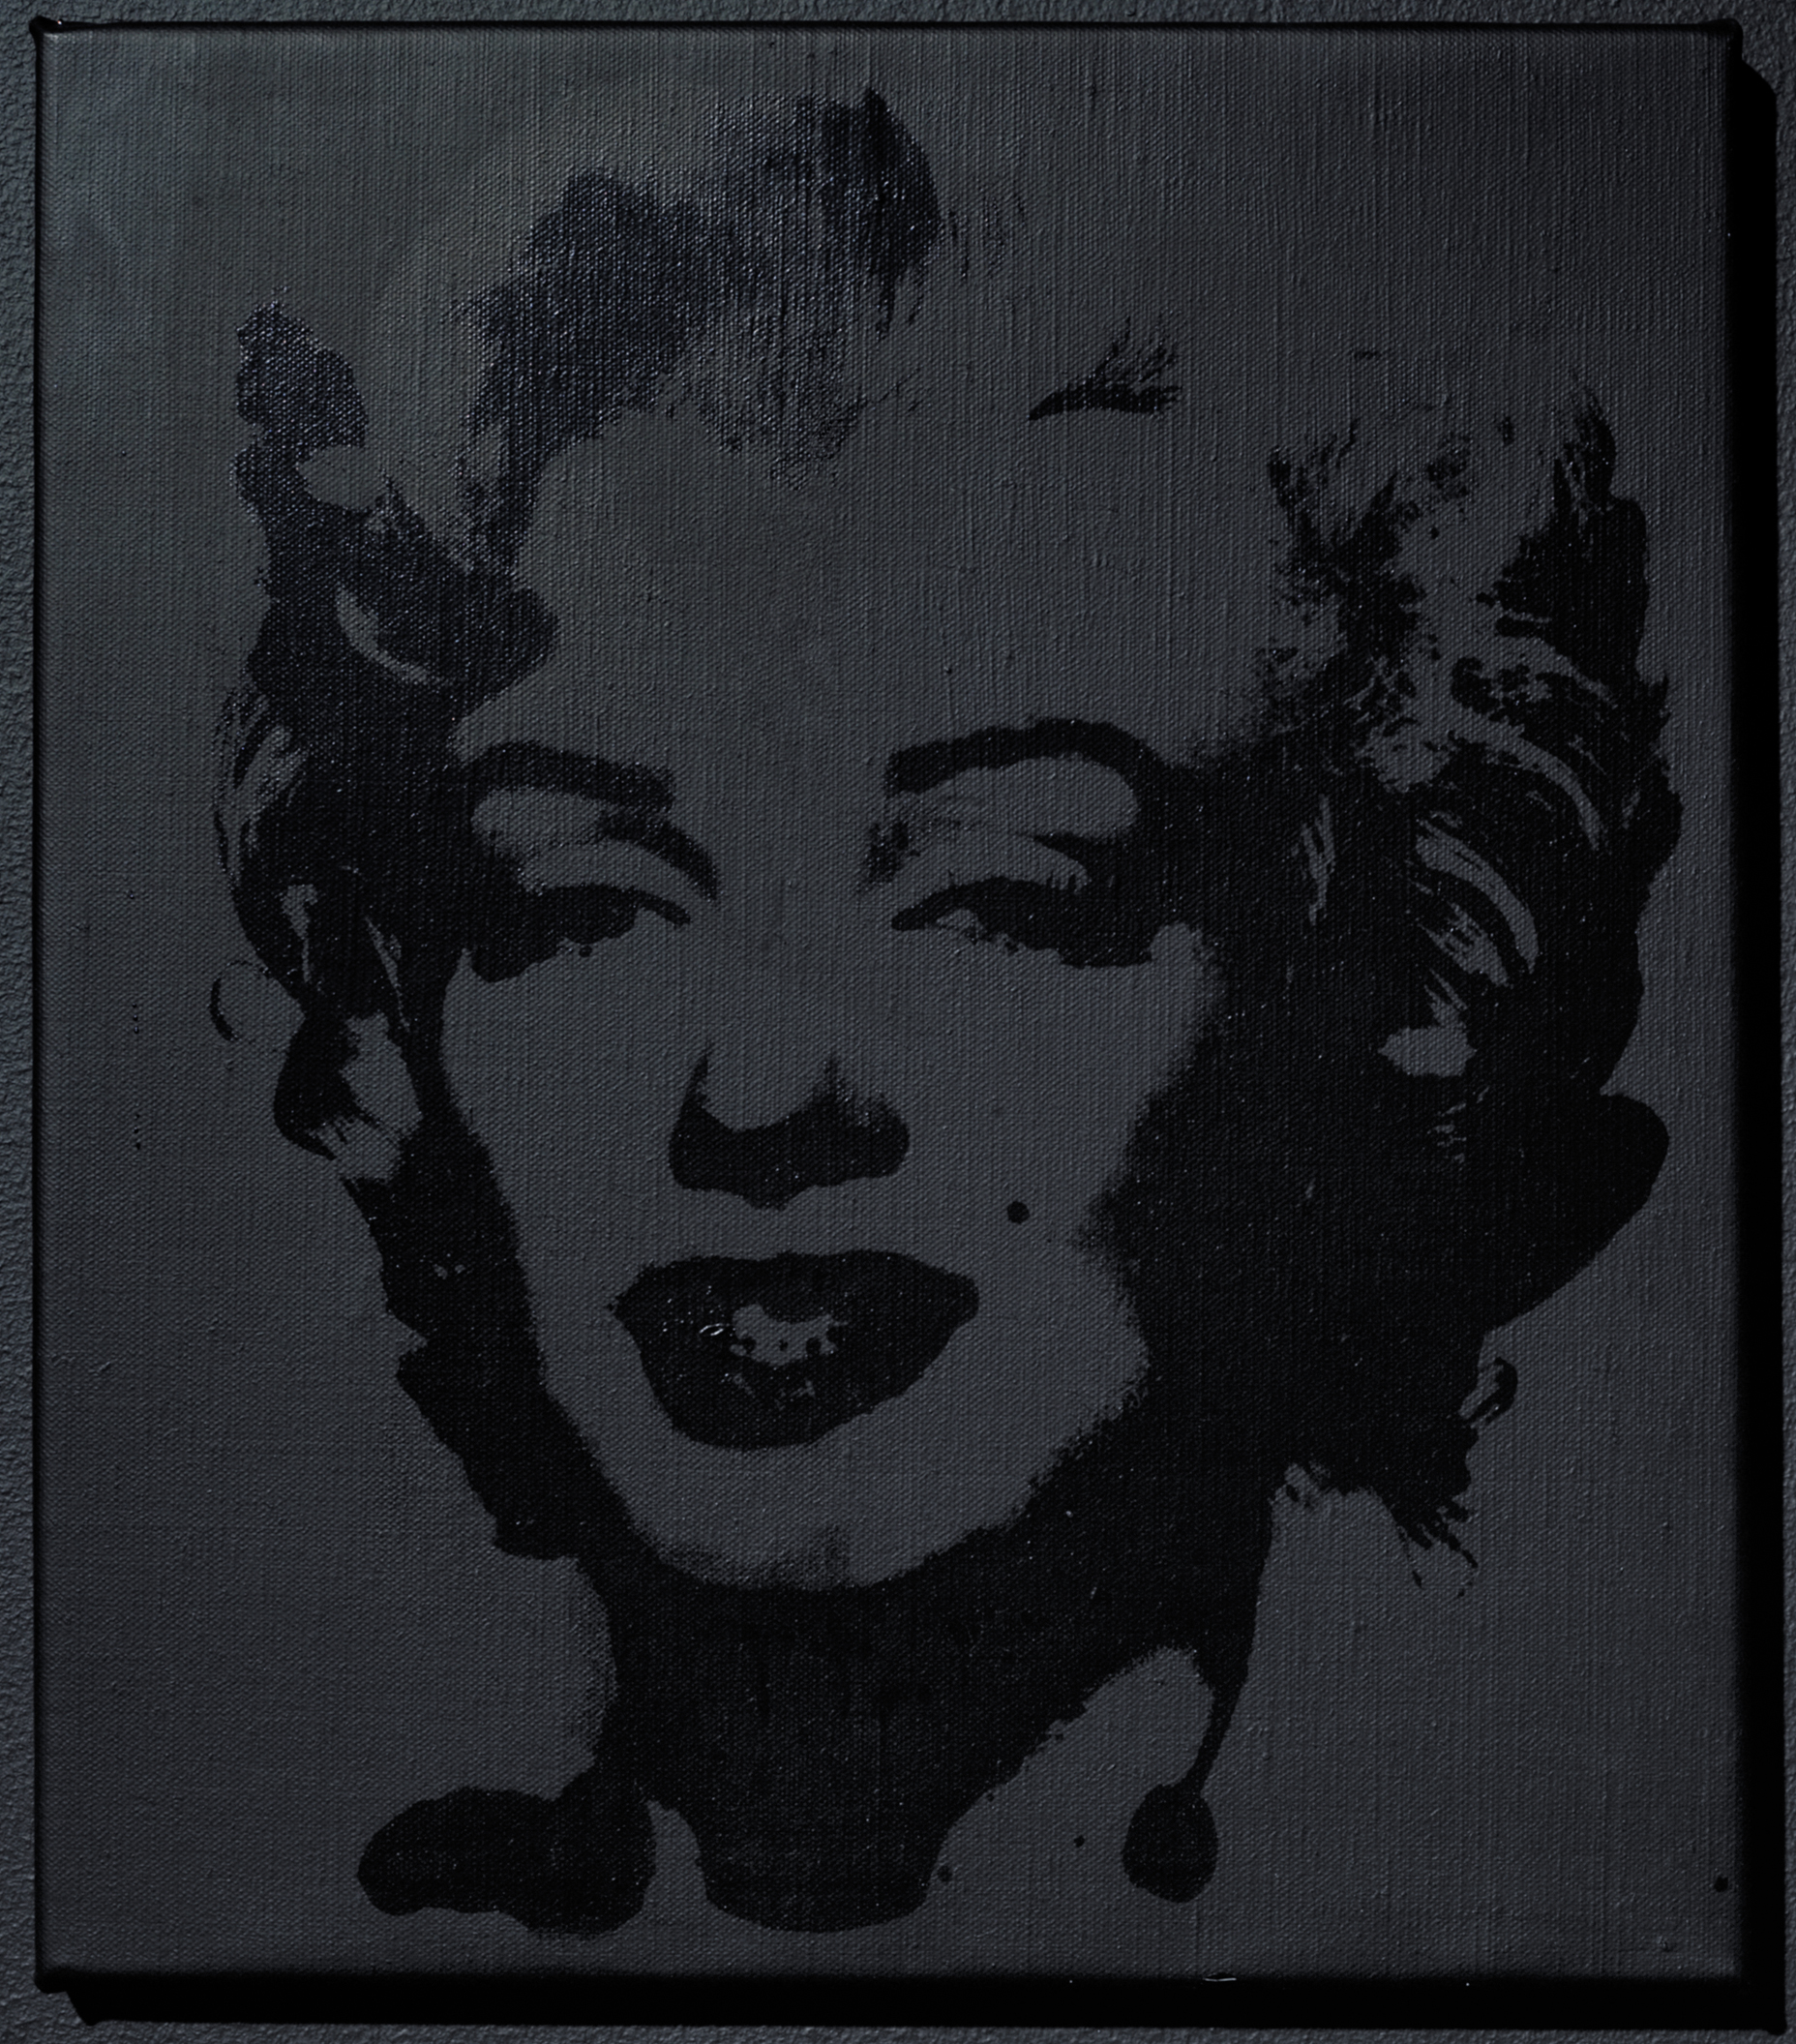 Elaine Sturtevant. Warhol Black Marilyn. 2004. Synthetic polymer silkscreen and acrylic on canvas. 15 15/16 x 13 7/8 in. (40.5 x 35.2 cm). Ringier Collection, Switzerland. Courtesy Anthony Reynolds Gallery, London. © Estate Sturtevant, Paris